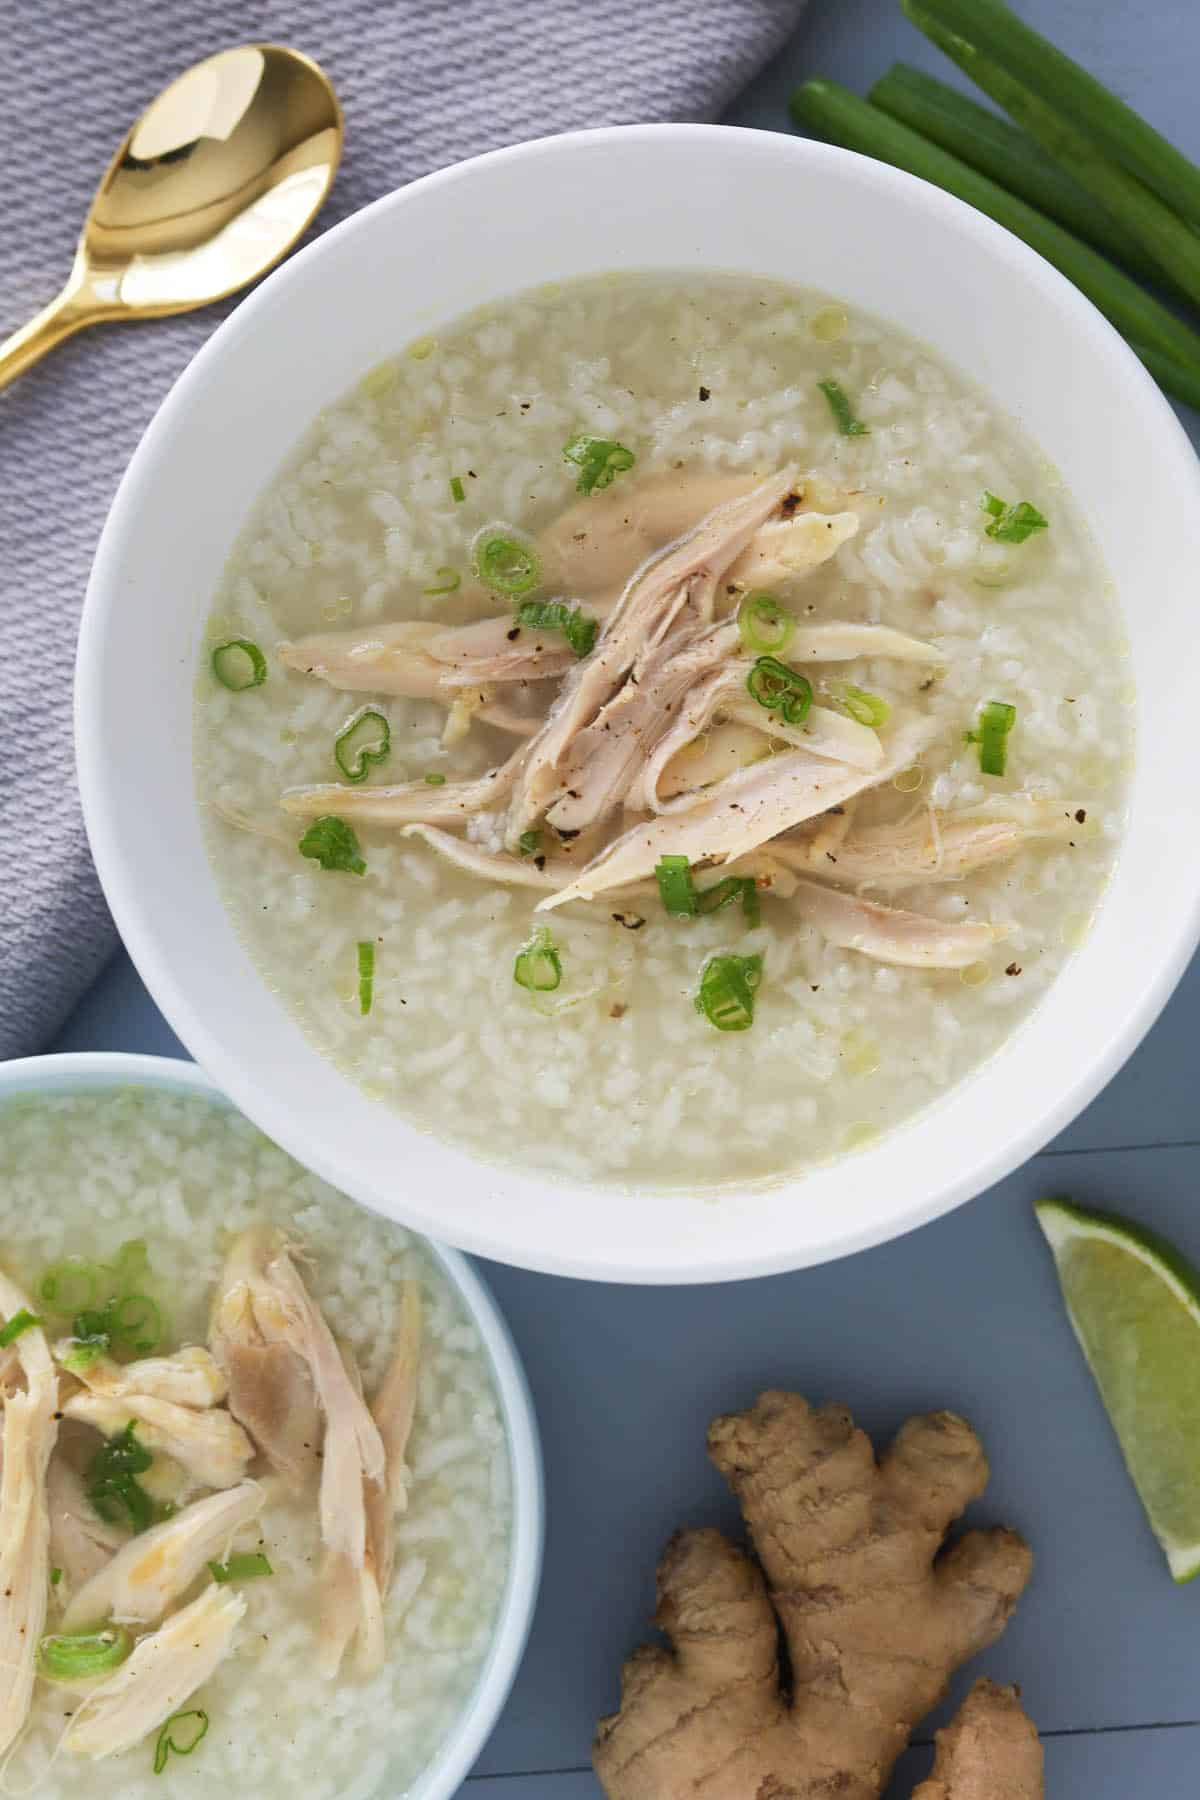 Two bowls of rice porridge with shredded chicken, garnished with green onions.